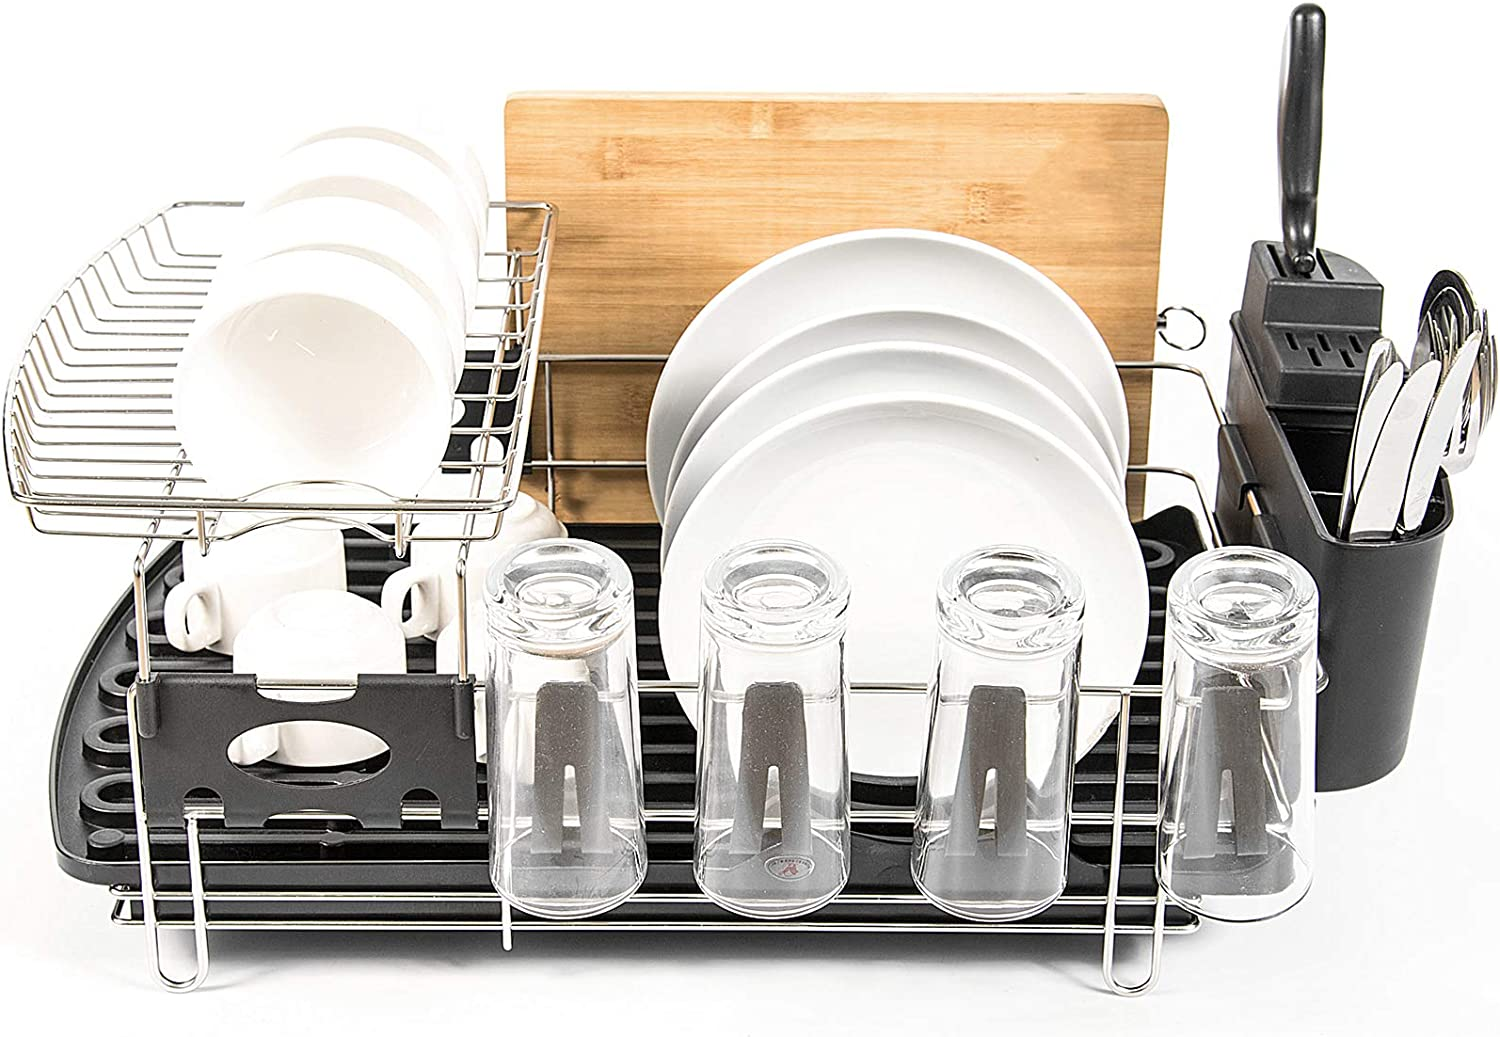 Dish Drying Rack with Max 65% OFF Drainboard Kit Stainless 304 Steel 2-Tier Opening large release sale